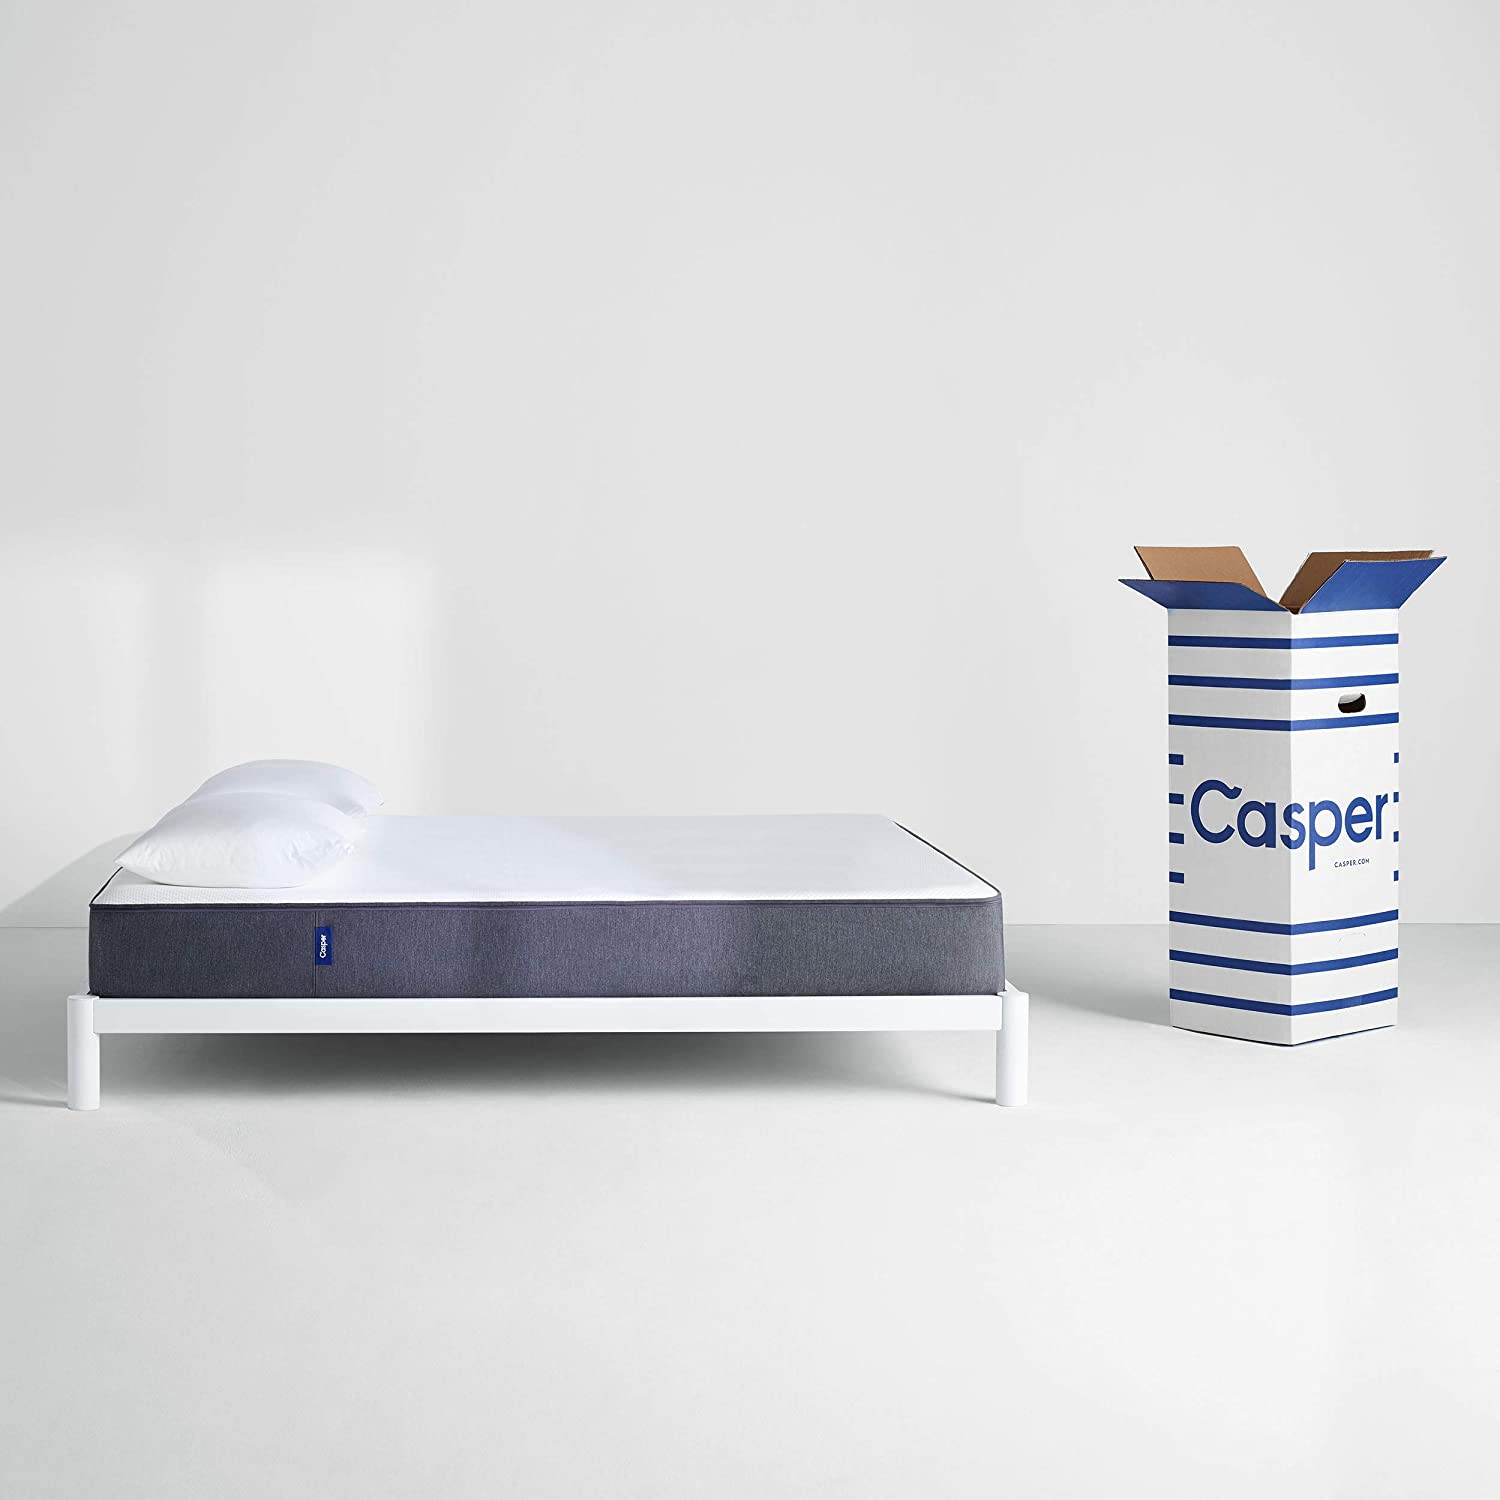 Casper Sleep Foam Mattress, Queen 10